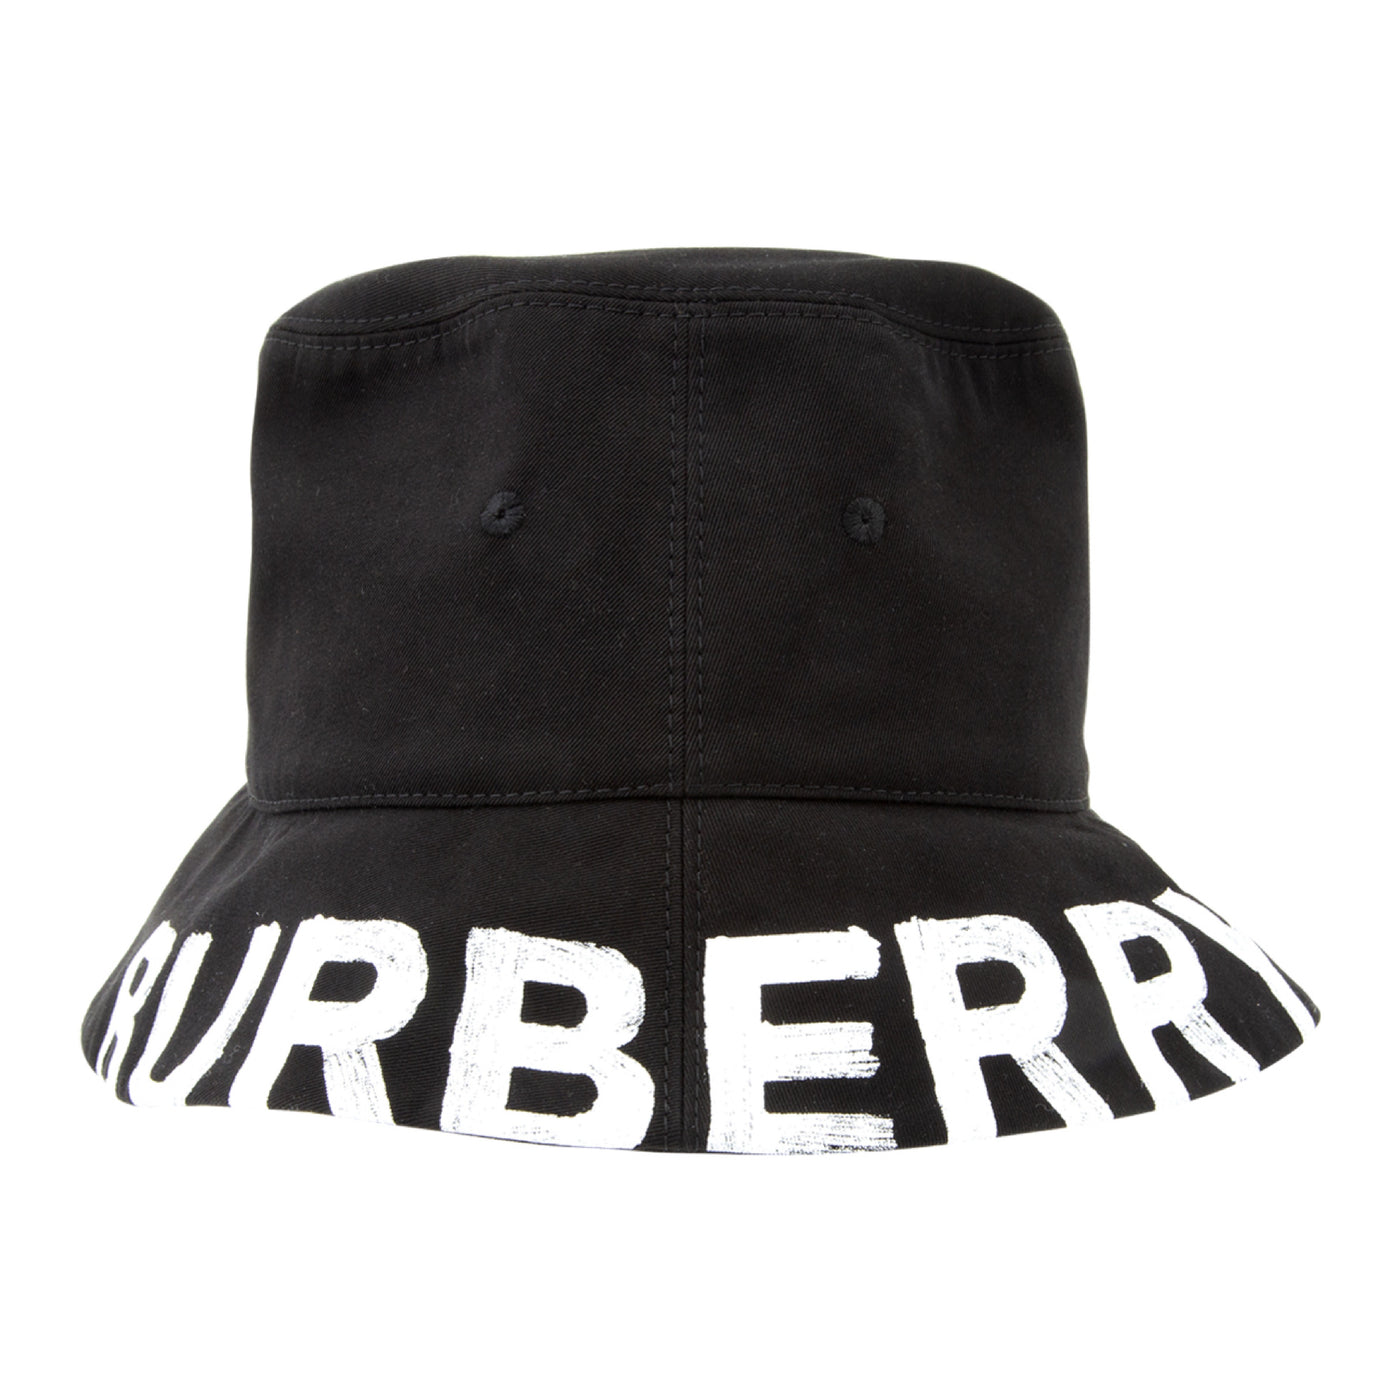 Load image into Gallery viewer, BURBERRY LOGO COTTON BUCKET HAT BLACK